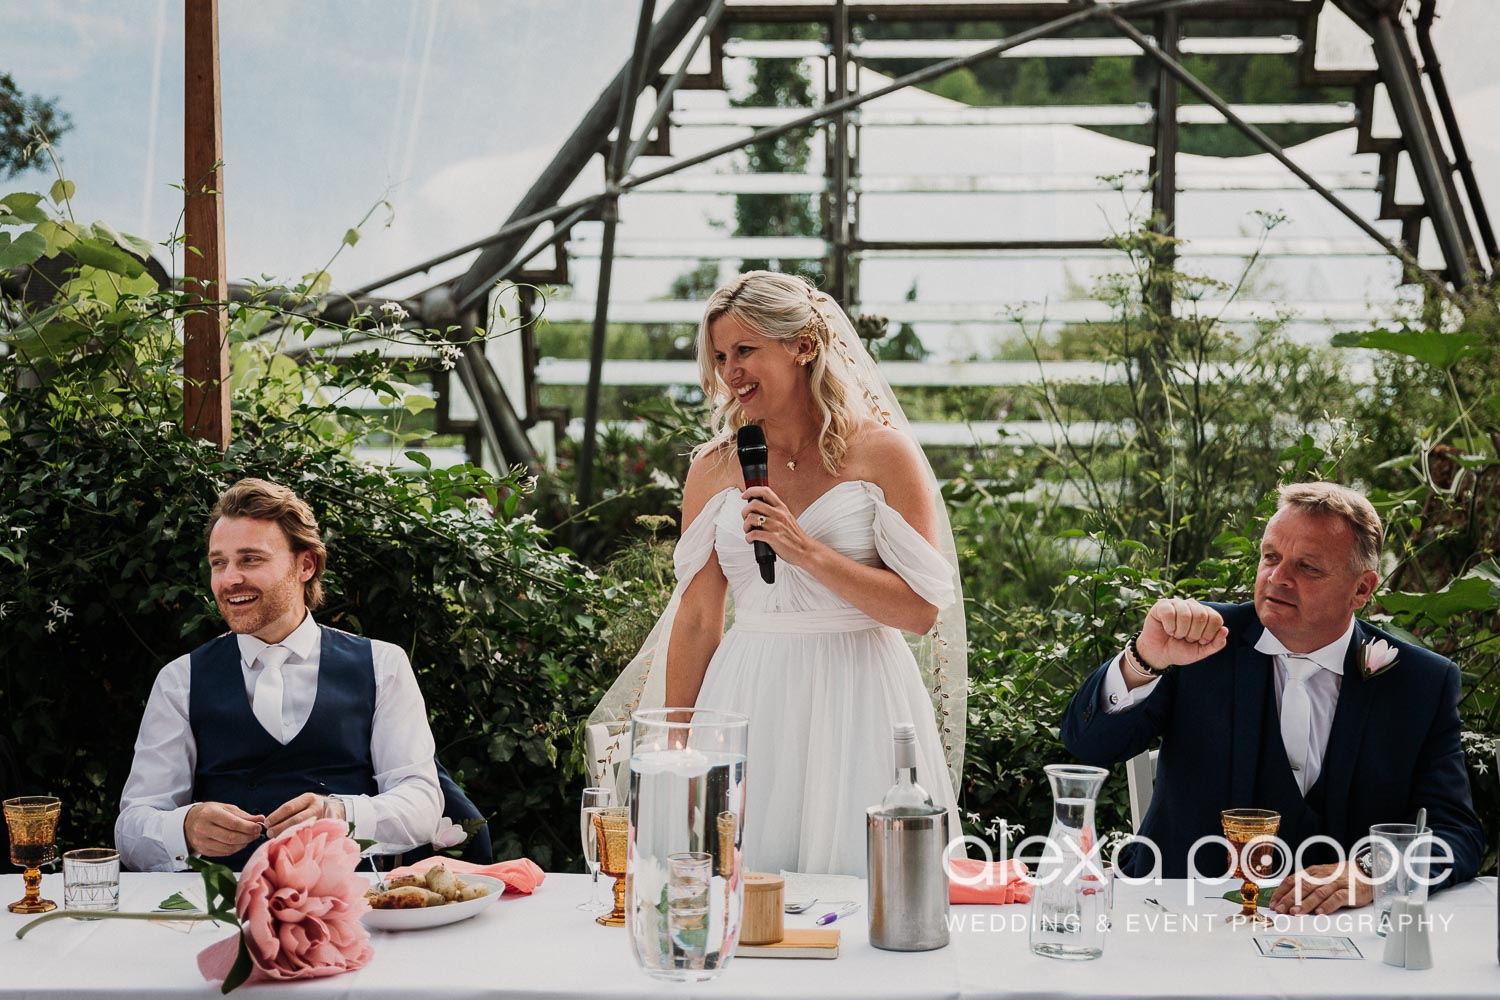 VA_wedding_edenproject_carnglaze_80.jpg